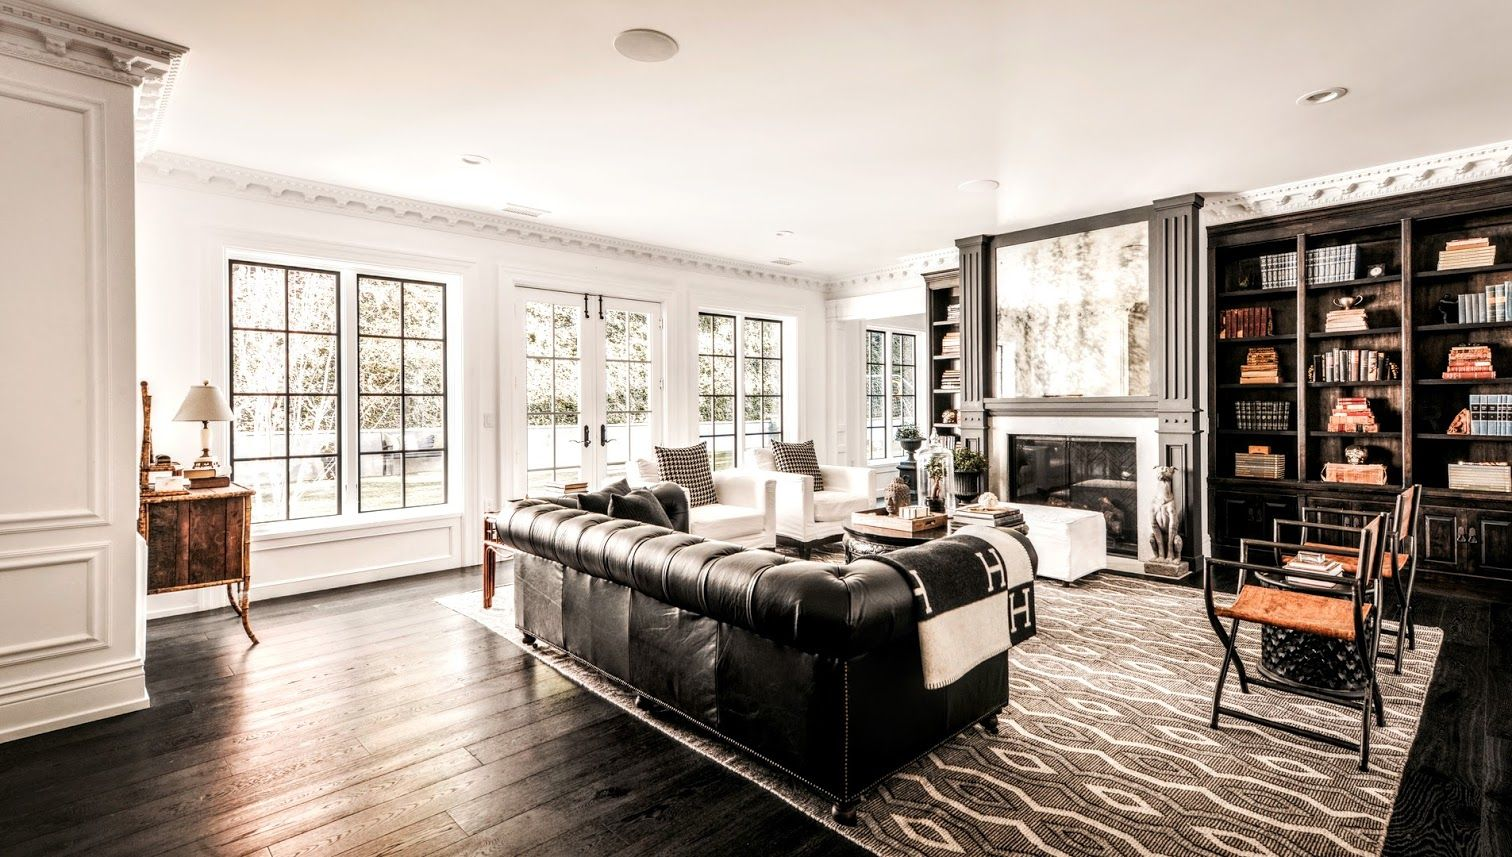 Pin By Meredith Pugh On Living Room Home Black Living Room Dream Living Rooms Million dollar homes living rooms